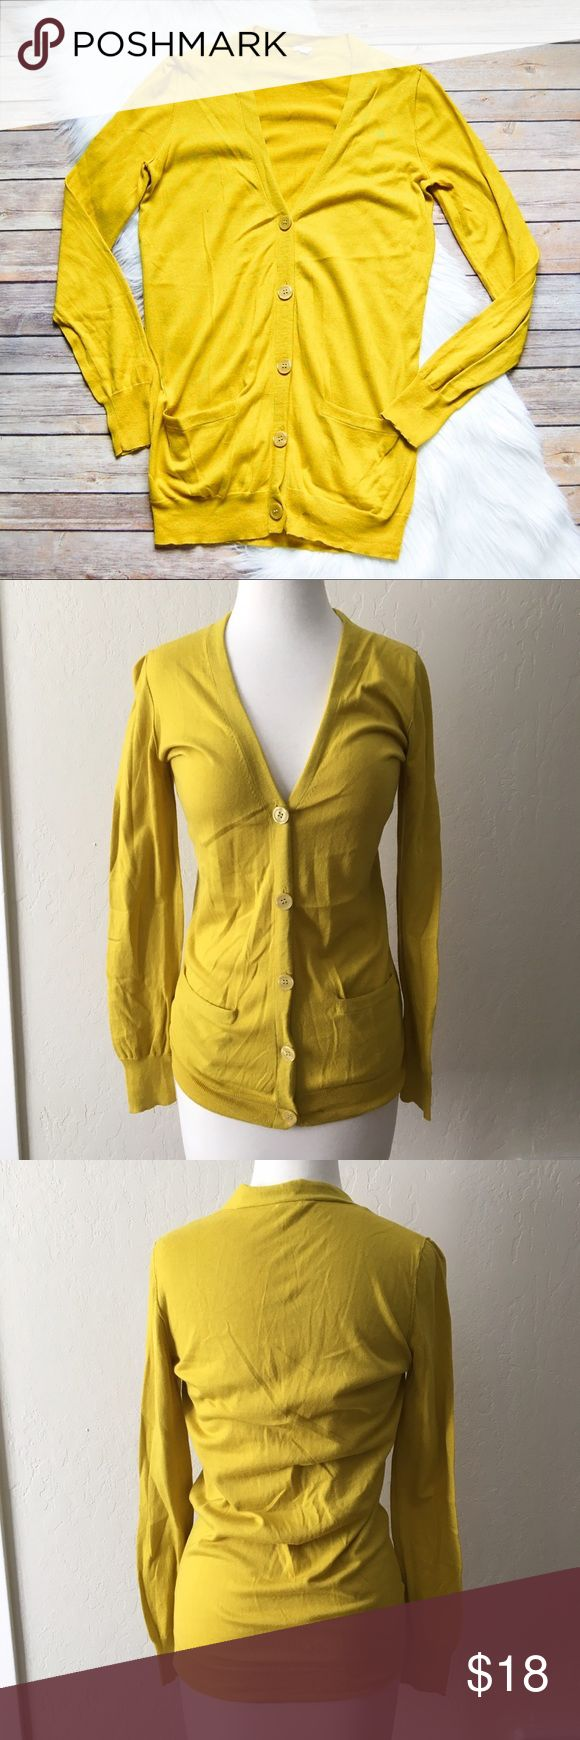 "J. CREW FACTORY Cardigan Mustard yellow lightweight cardigan with two front pockets. Banded hem and cuffs. 100% cotton. Fits longer.  Armpit: 17"" Shoulder to Hem: 28""  Instagram: @bringingupsuns J. Crew Factory Sweaters Cardigans"